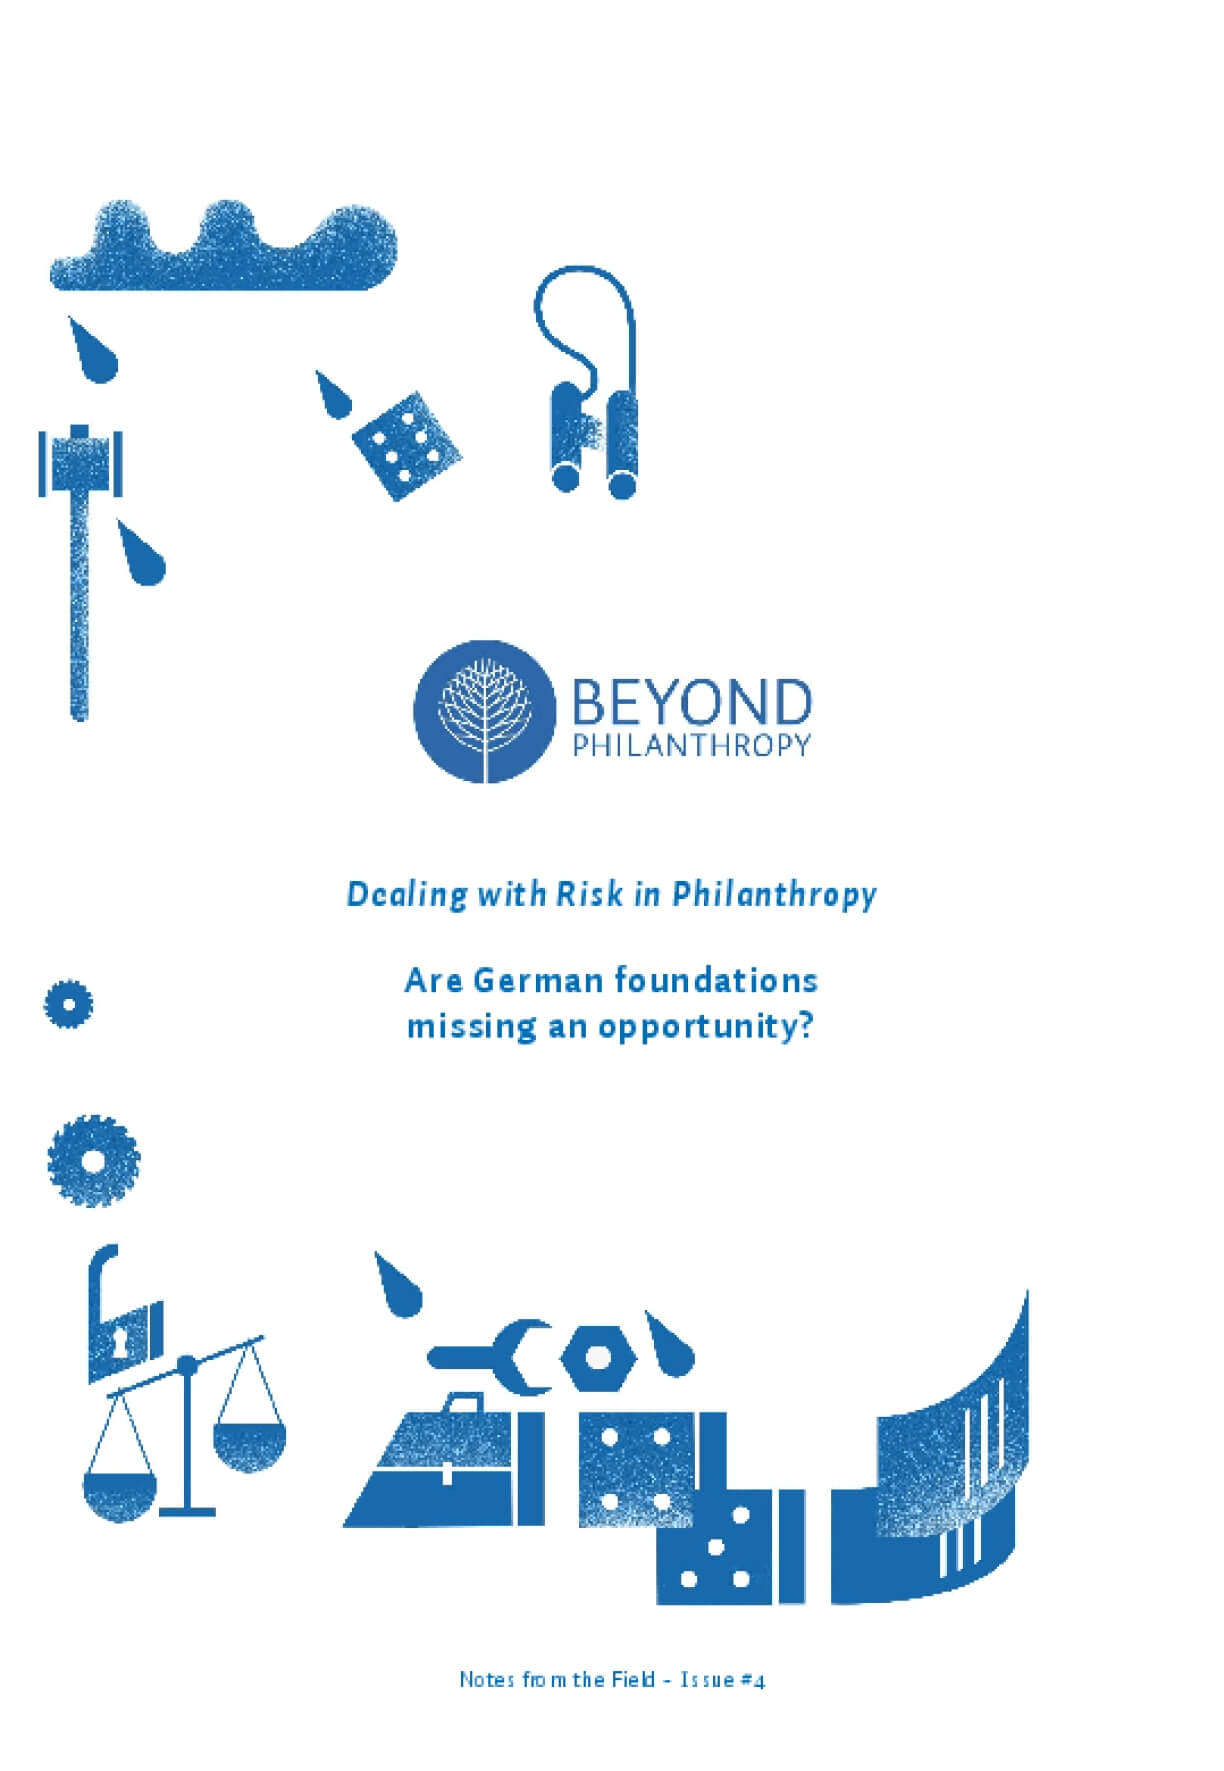 Dealing with Risk in Philanthropy: Are German Foundations Missing an Opportunity?